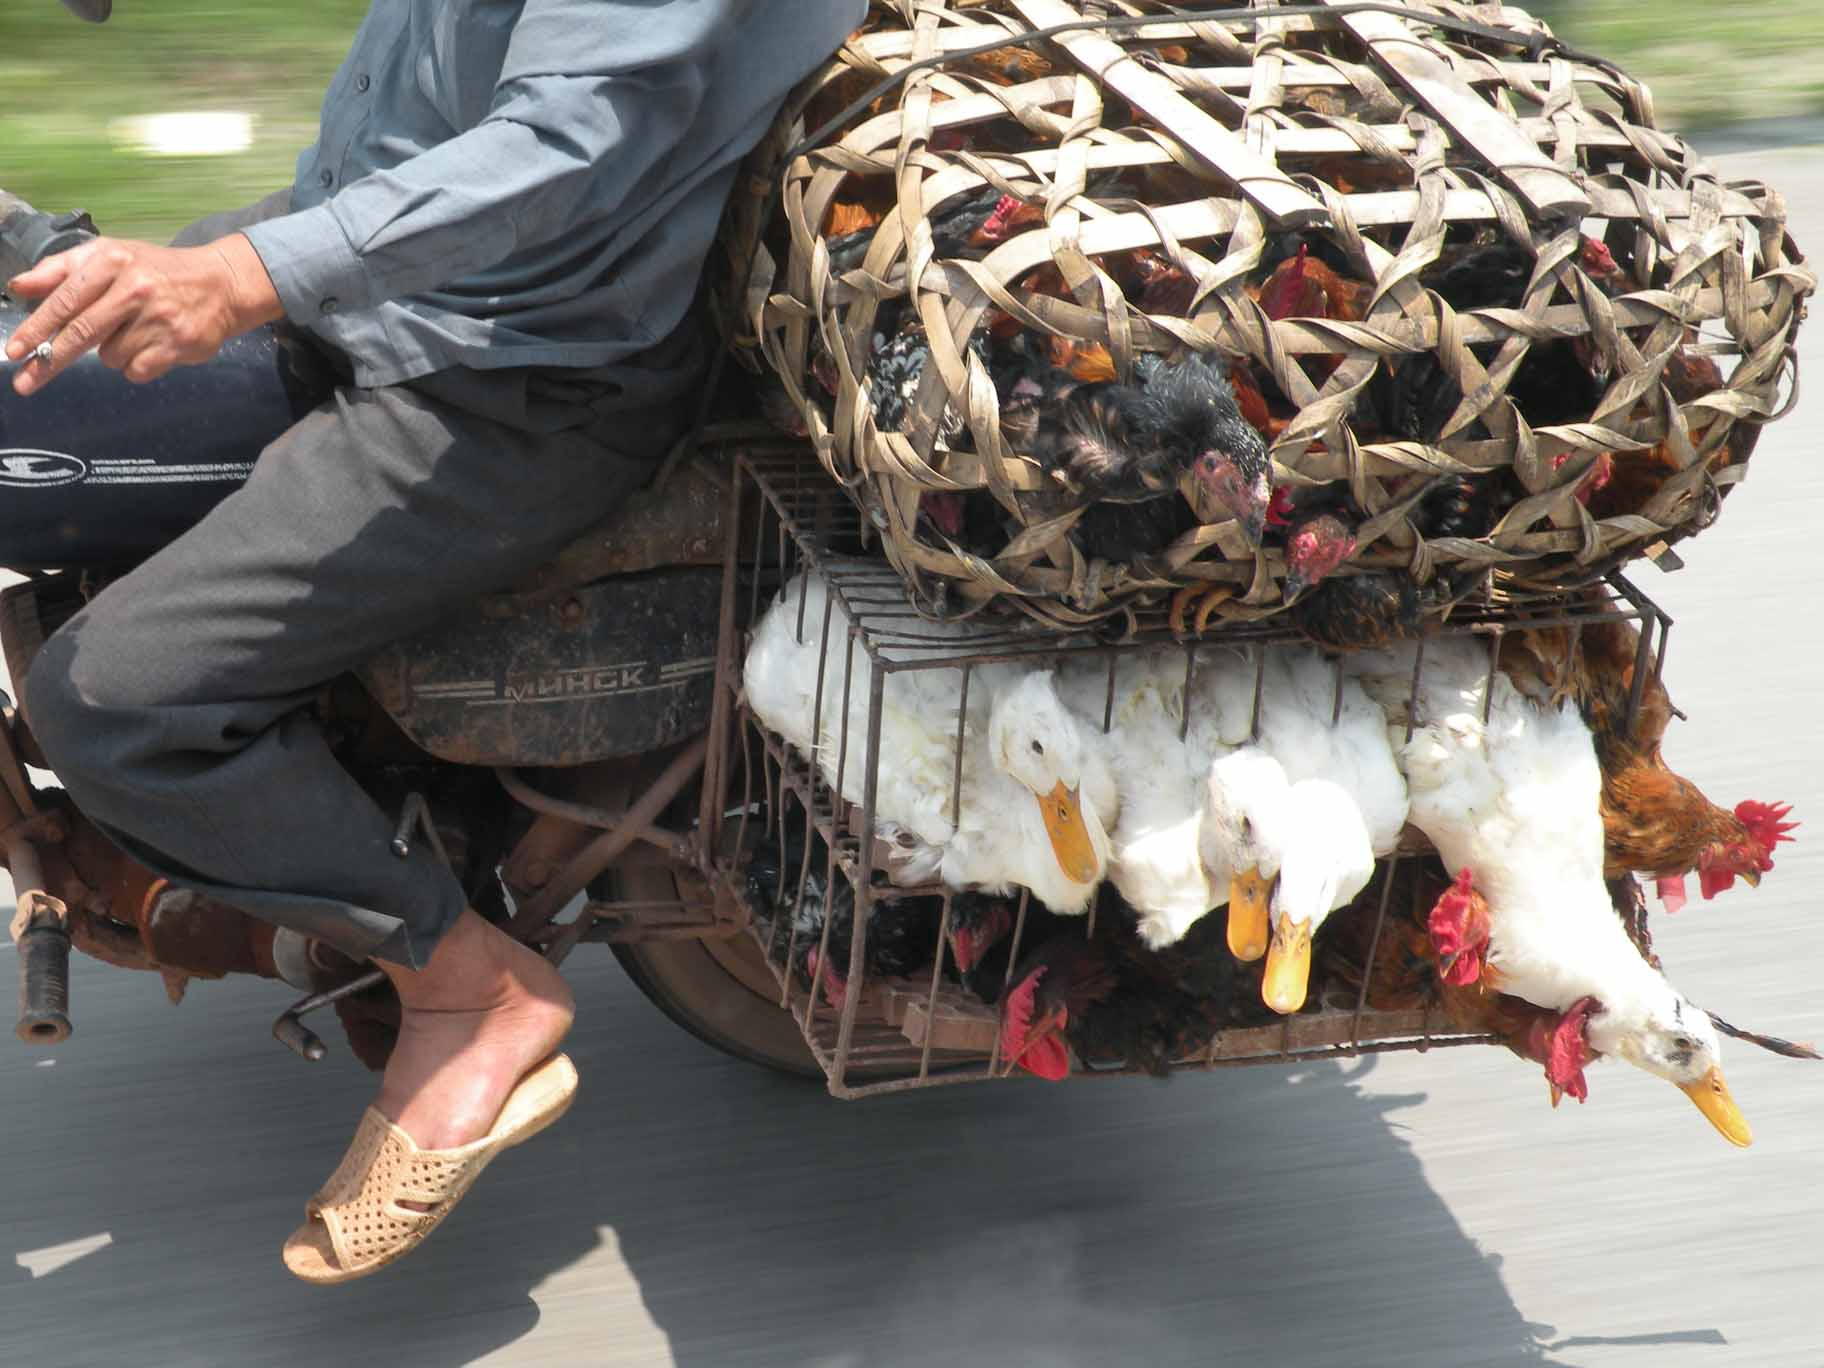 Going to Market, Vietnam